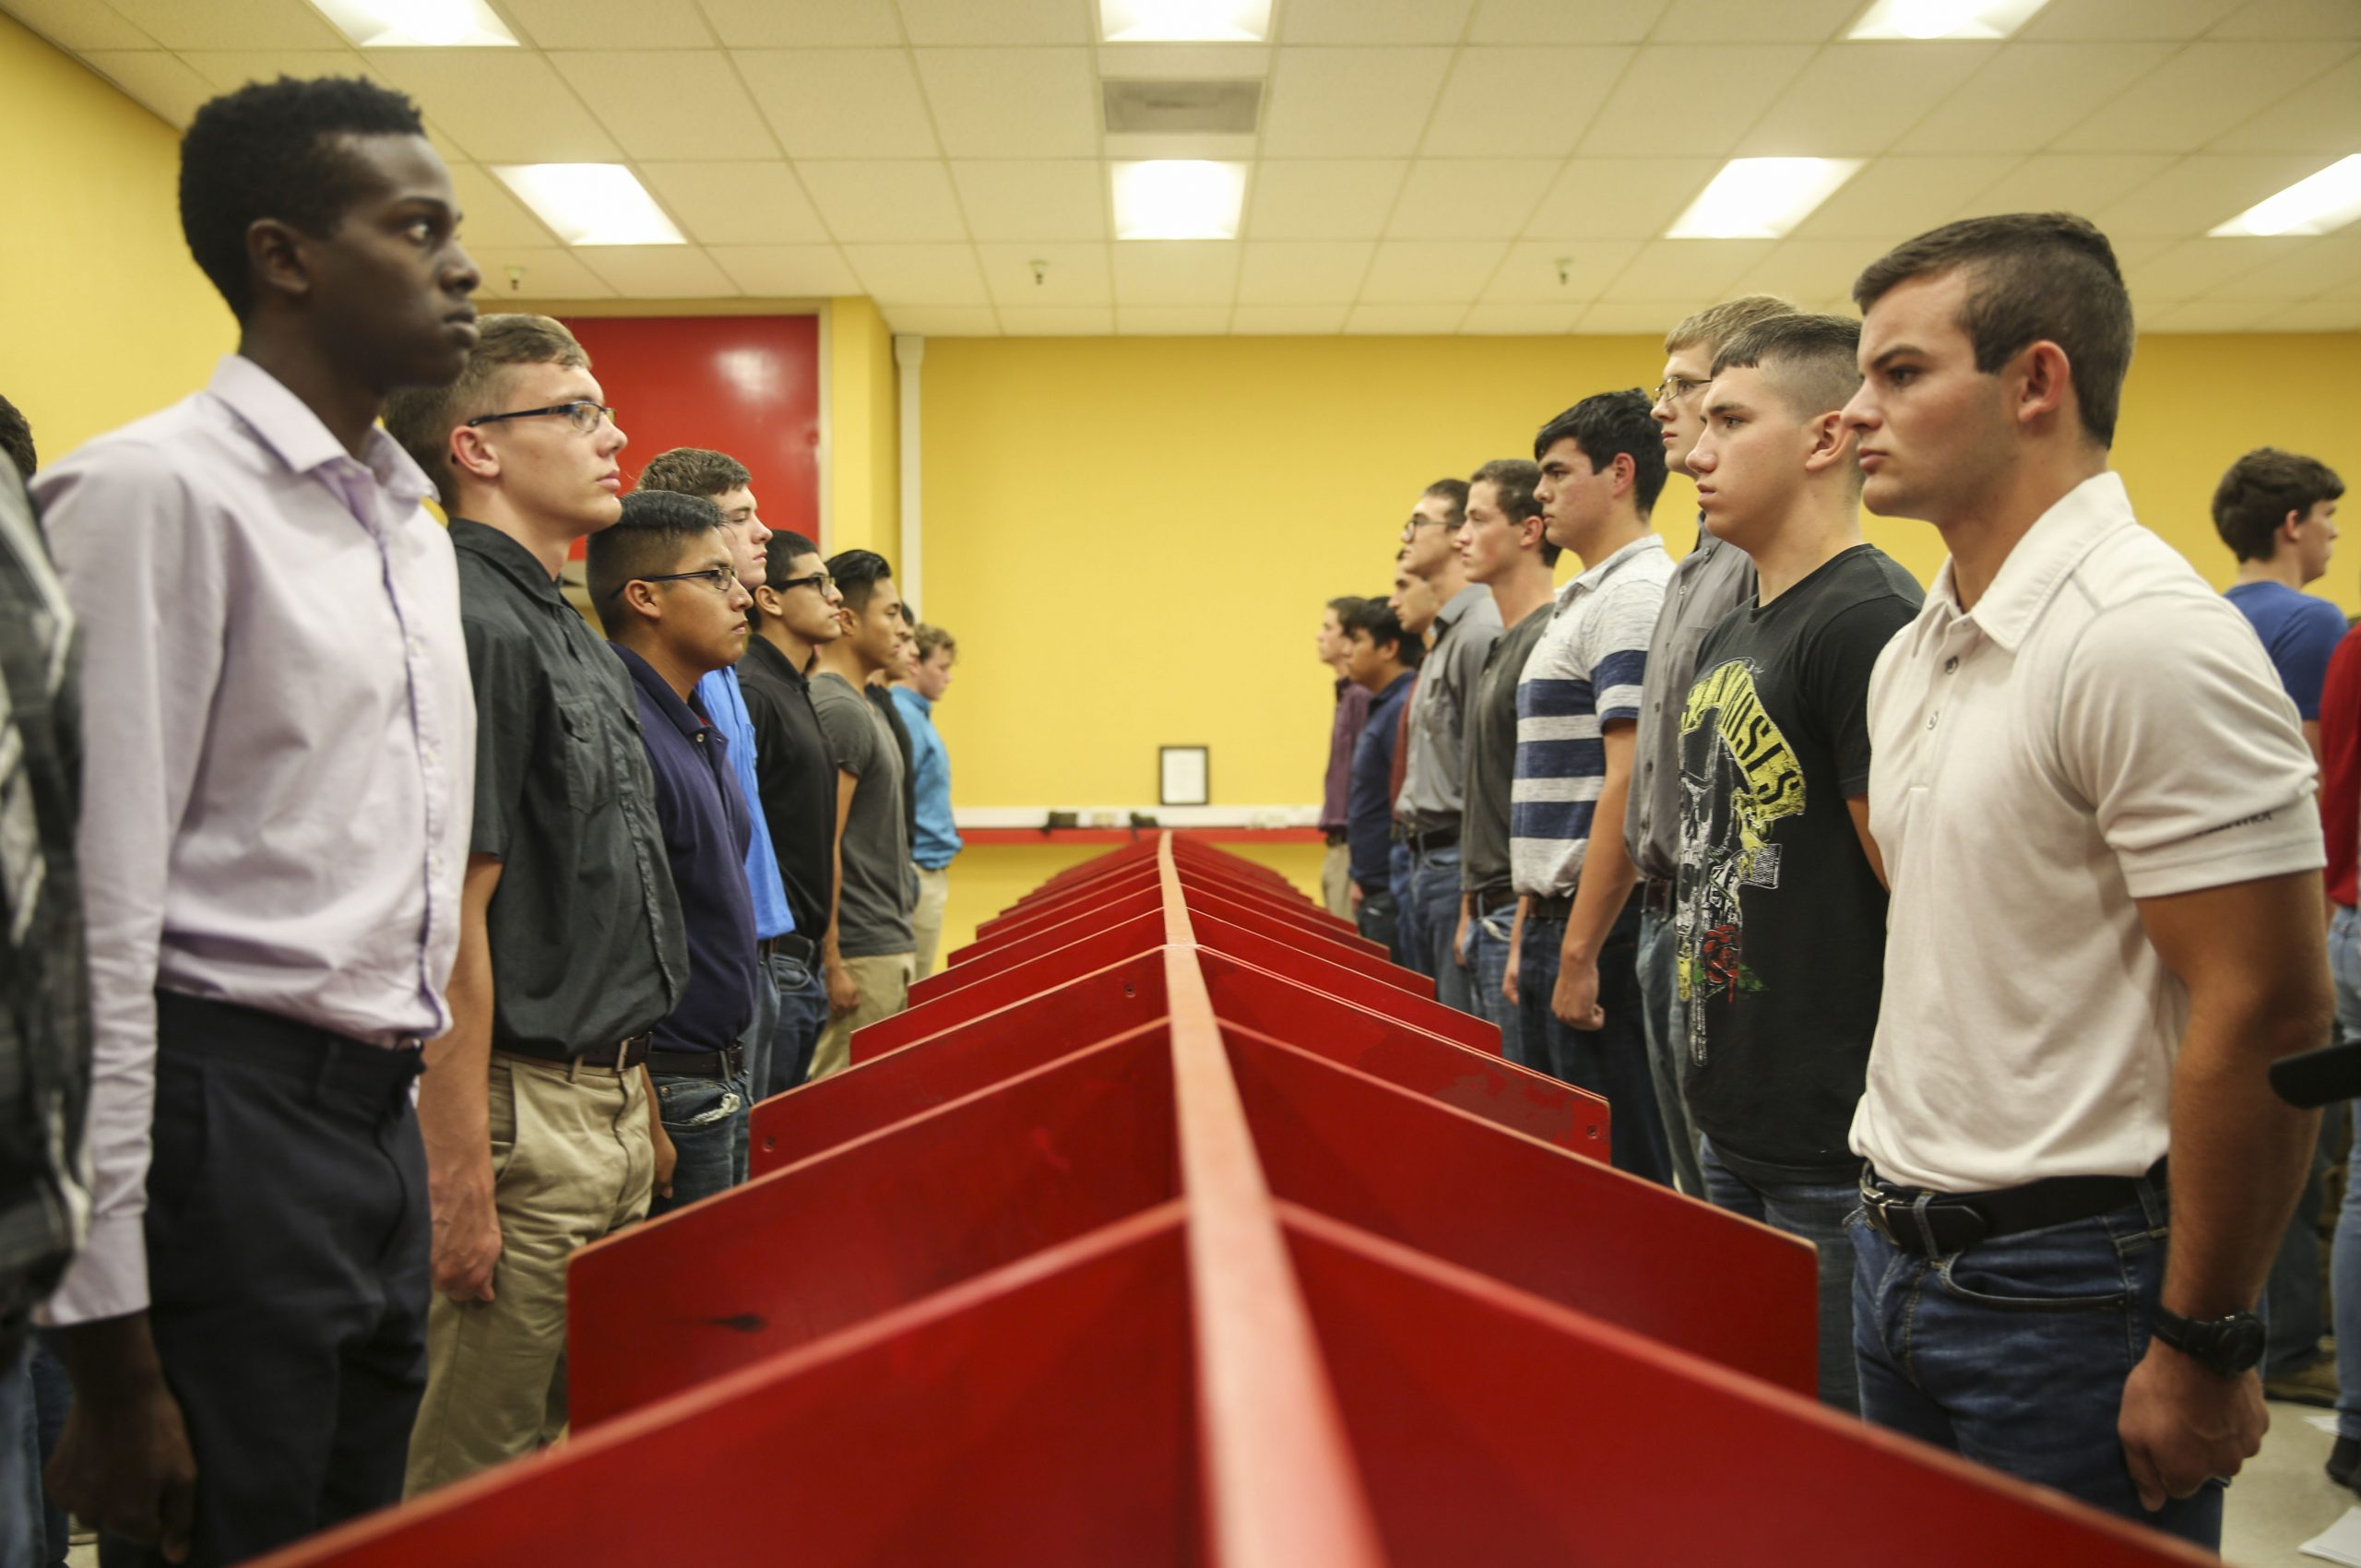 Marine Corps Enlistment Requirements - What standards need to be met.